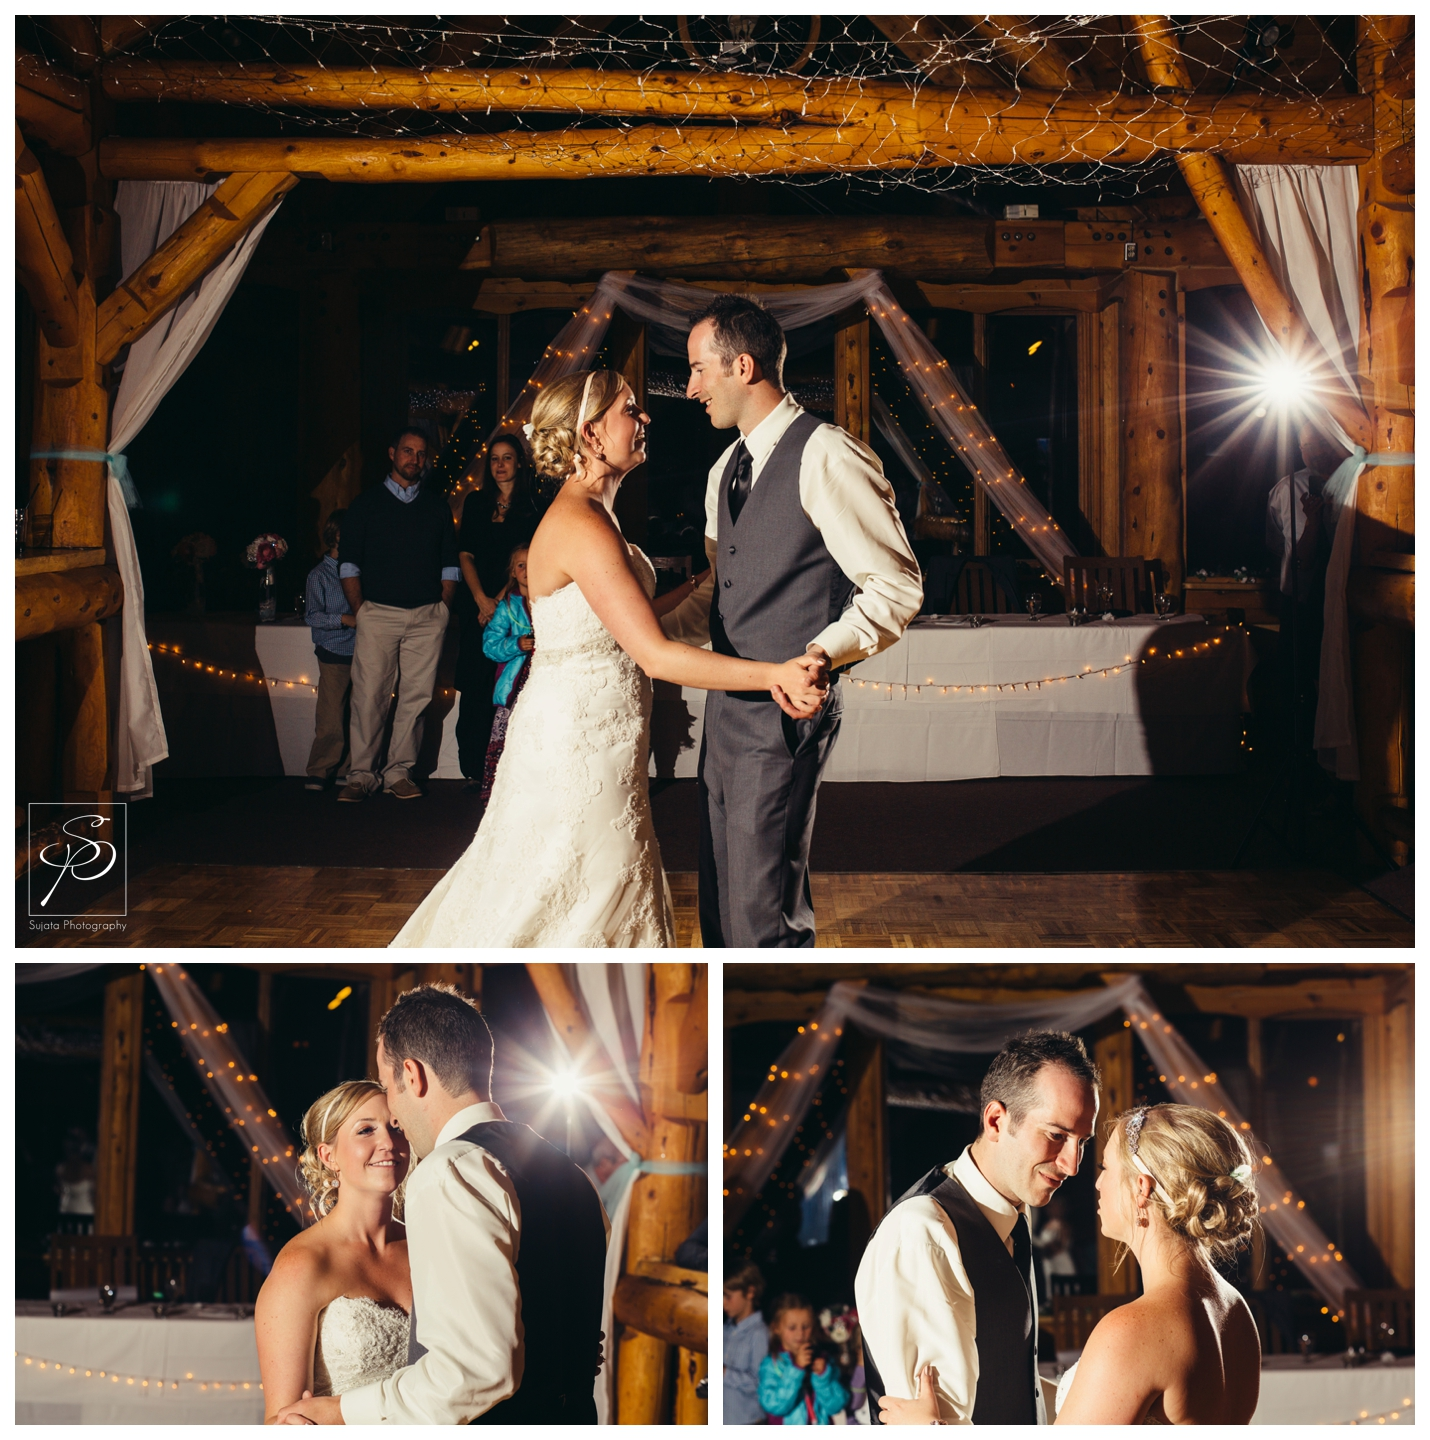 First dance at lake louise ski hill wedding reception